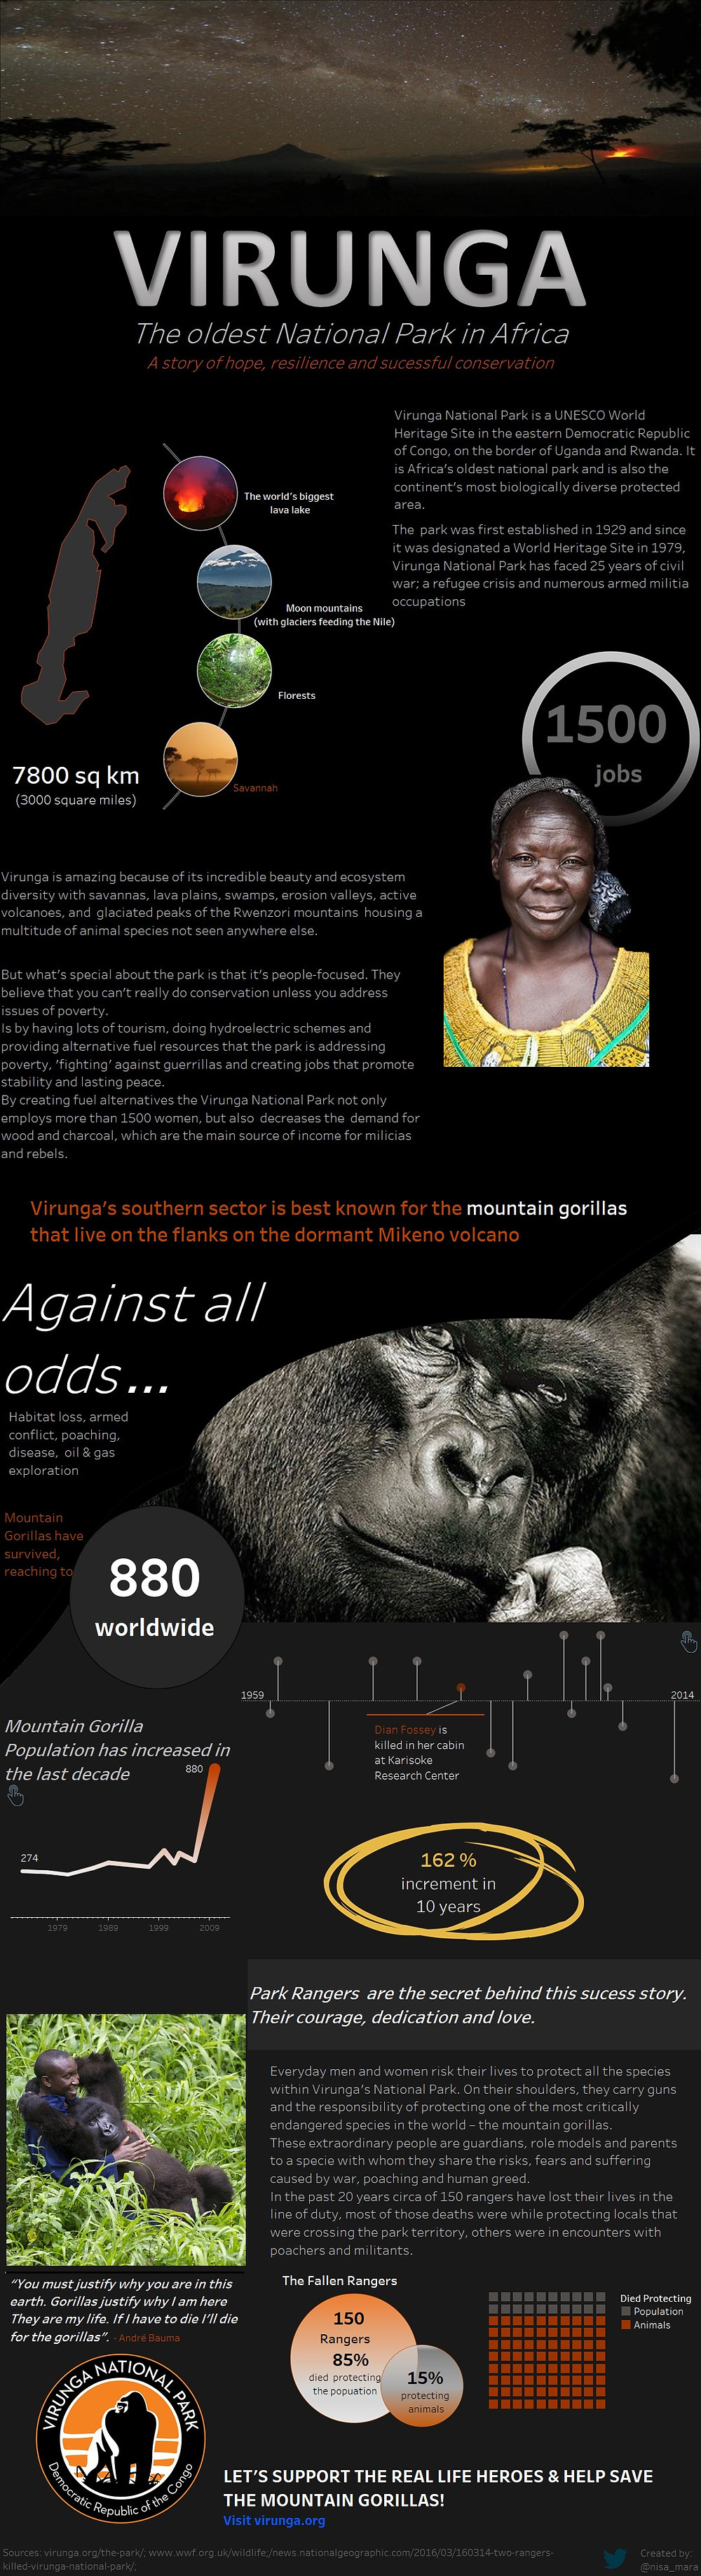 Virunga- ironviz